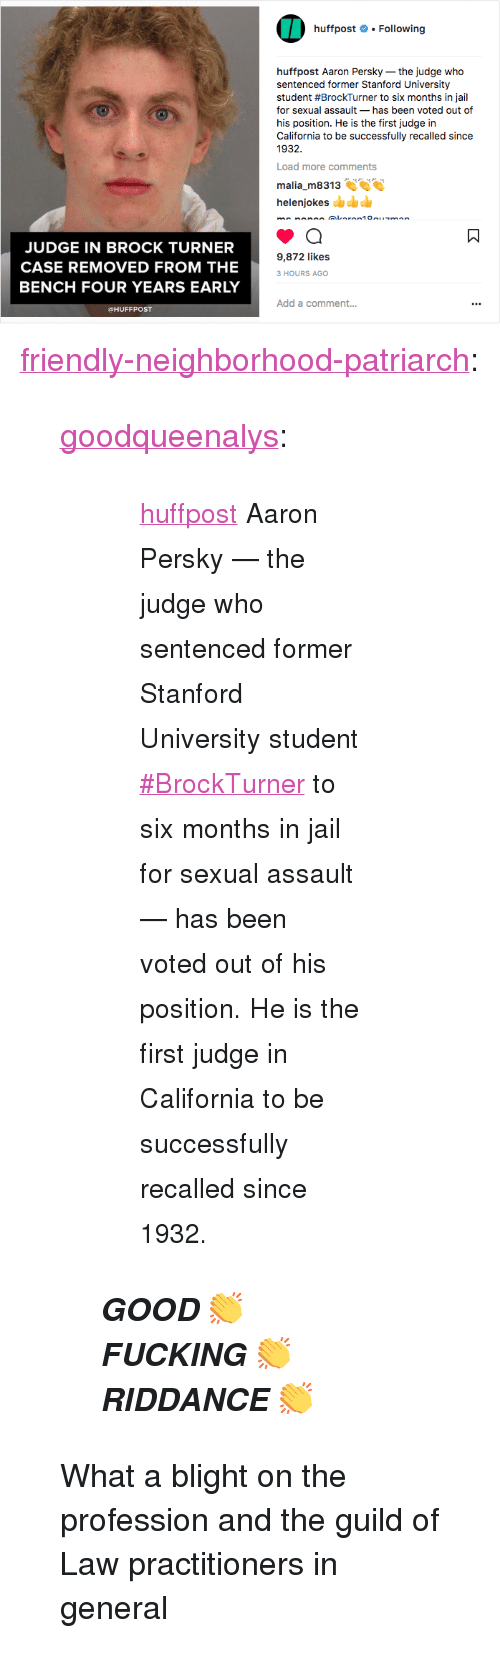 "Fucking, Instagram, and Jail: huffpost # . Following  huffpost Aaron Persky-the judge who  sentenced former Stanford University  student #BrockTurner to six months in jail  for sexual assault- has been voted out of  his position. He is the first judge in  California to be successfully recalled since  1932  Load more comments  malia m8313  helenjokes  JUDGE IN BROCK TURNER  CASE REMOVED FROM THE  BENCH FOUR YEARS EARLY  9,872 likes  3 HOURS AGO  Add a comment..  @HUFFPOST <p><a href=""http://friendly-neighborhood-patriarch.tumblr.com/post/174644617002/goodqueenalys-huffpost-aaron-persky-the-judge"" class=""tumblr_blog"">friendly-neighborhood-patriarch</a>:</p>  <blockquote><p><a href=""http://goodqueenalys.tumblr.com/post/174641374163/huffpost-aaron-persky-the-judge-who-sentenced"" class=""tumblr_blog"">goodqueenalys</a>:</p><blockquote> <blockquote><p><small><a href=""https://www.instagram.com/huffpost/"" title=""huffpost"">huffpost</a> Aaron Persky — the judge who sentenced former Stanford University student <a href=""https://www.instagram.com/explore/tags/brockturner/"">#BrockTurner</a> to six months in jail for sexual assault — has been voted out of his position. He is the first judge in California to be successfully recalled since 1932.</small></p></blockquote> <p><b><i>GOOD 👏  FUCKING 👏  RIDDANCE 👏</i></b></p> </blockquote>  <p>What a blight on the profession and the guild of Law practitioners in general</p></blockquote>"